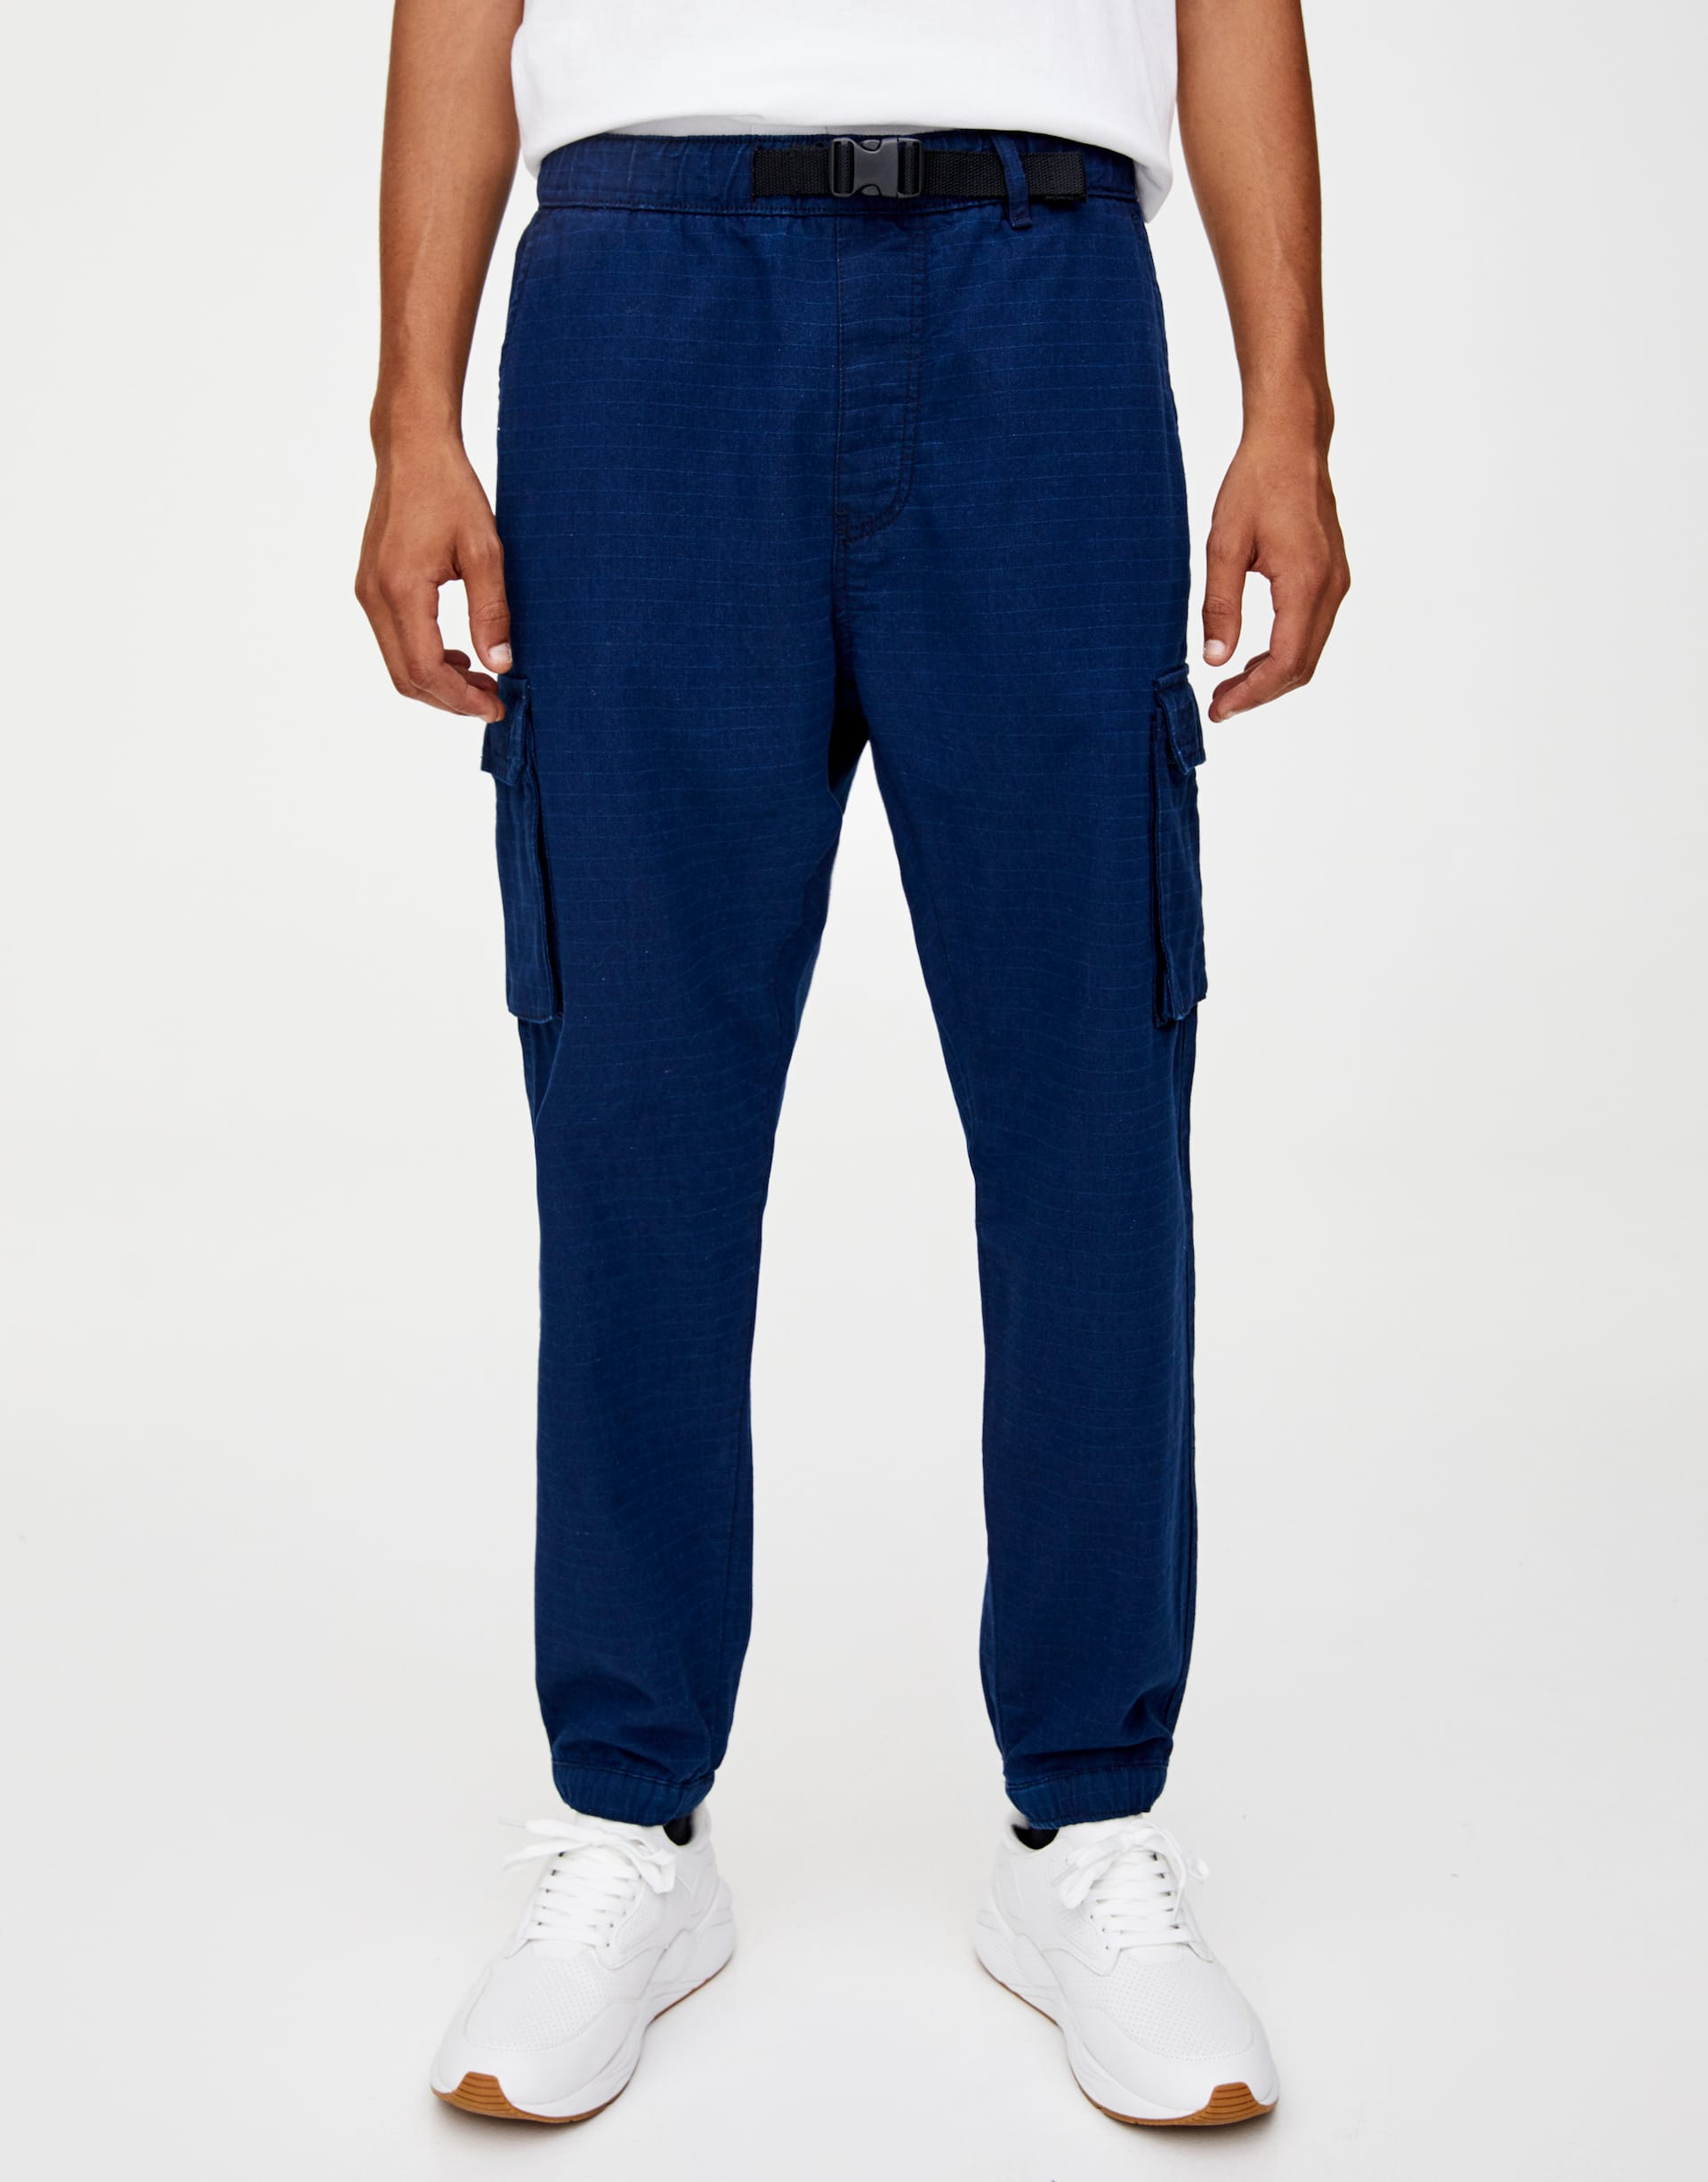 diversified in packaging watch search for genuine Ripstop cargo beach trousers